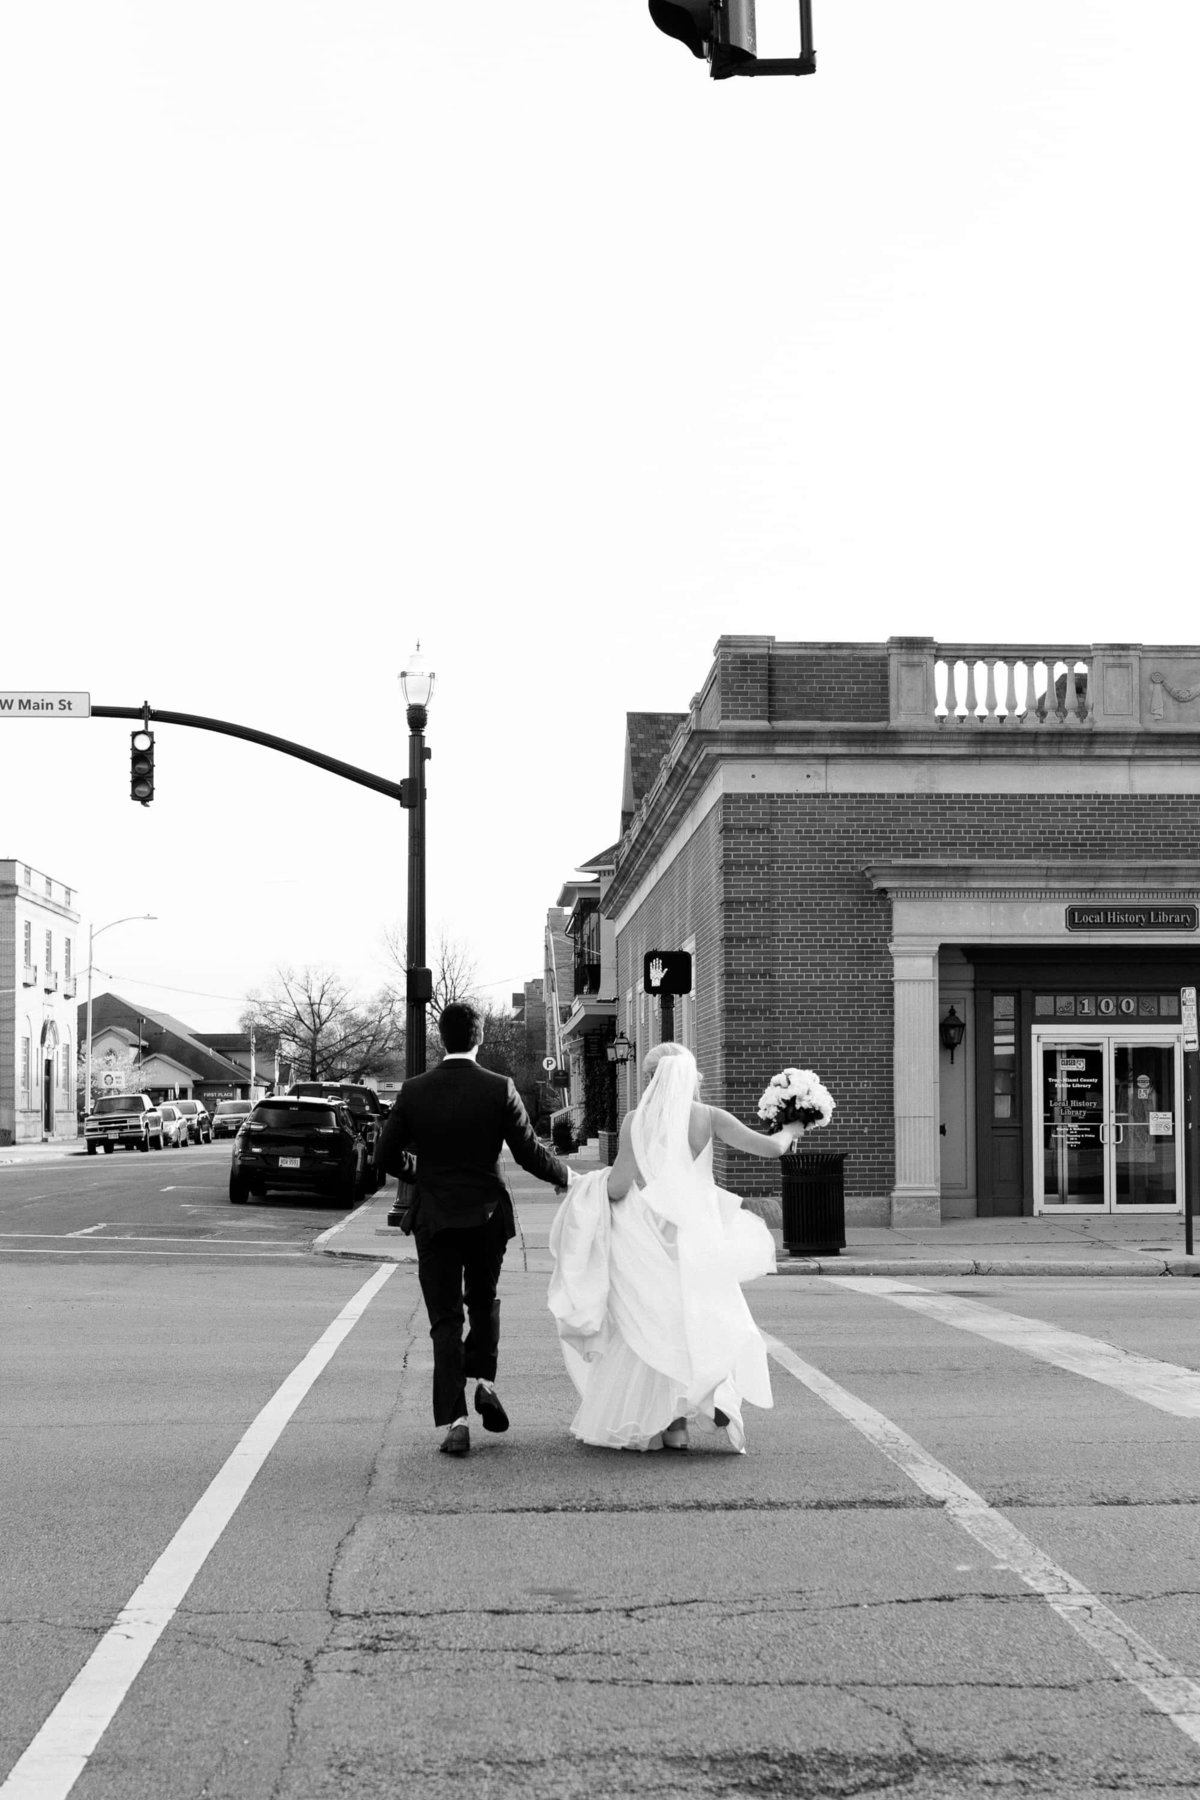 A bride and groom run across the street in the middle of a crosswalk